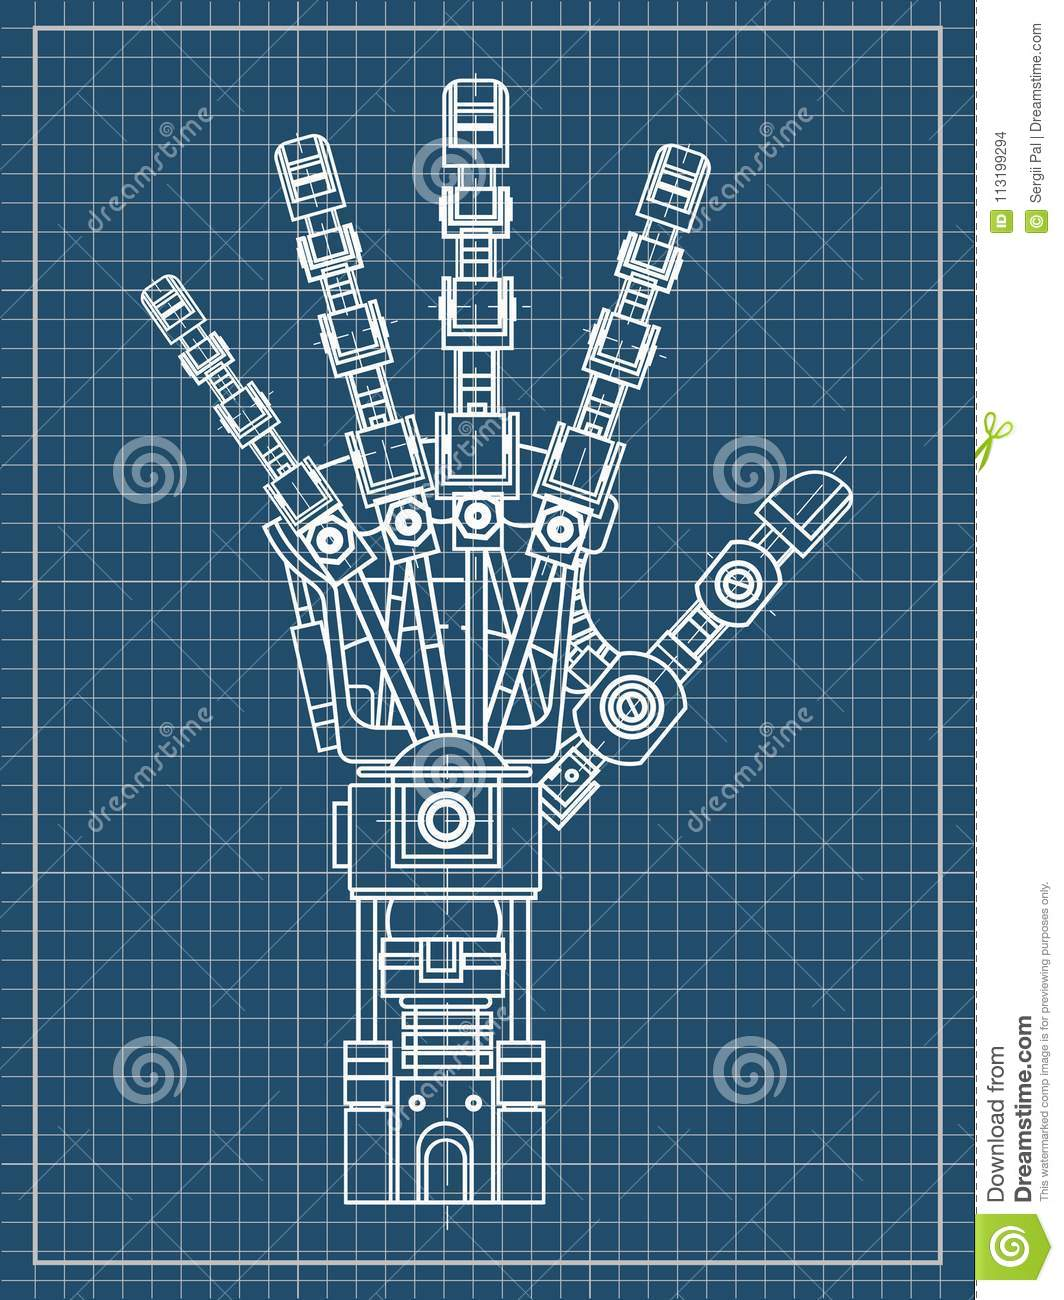 Robot Arm This Vector Illustration Be Used As An Illustration Of